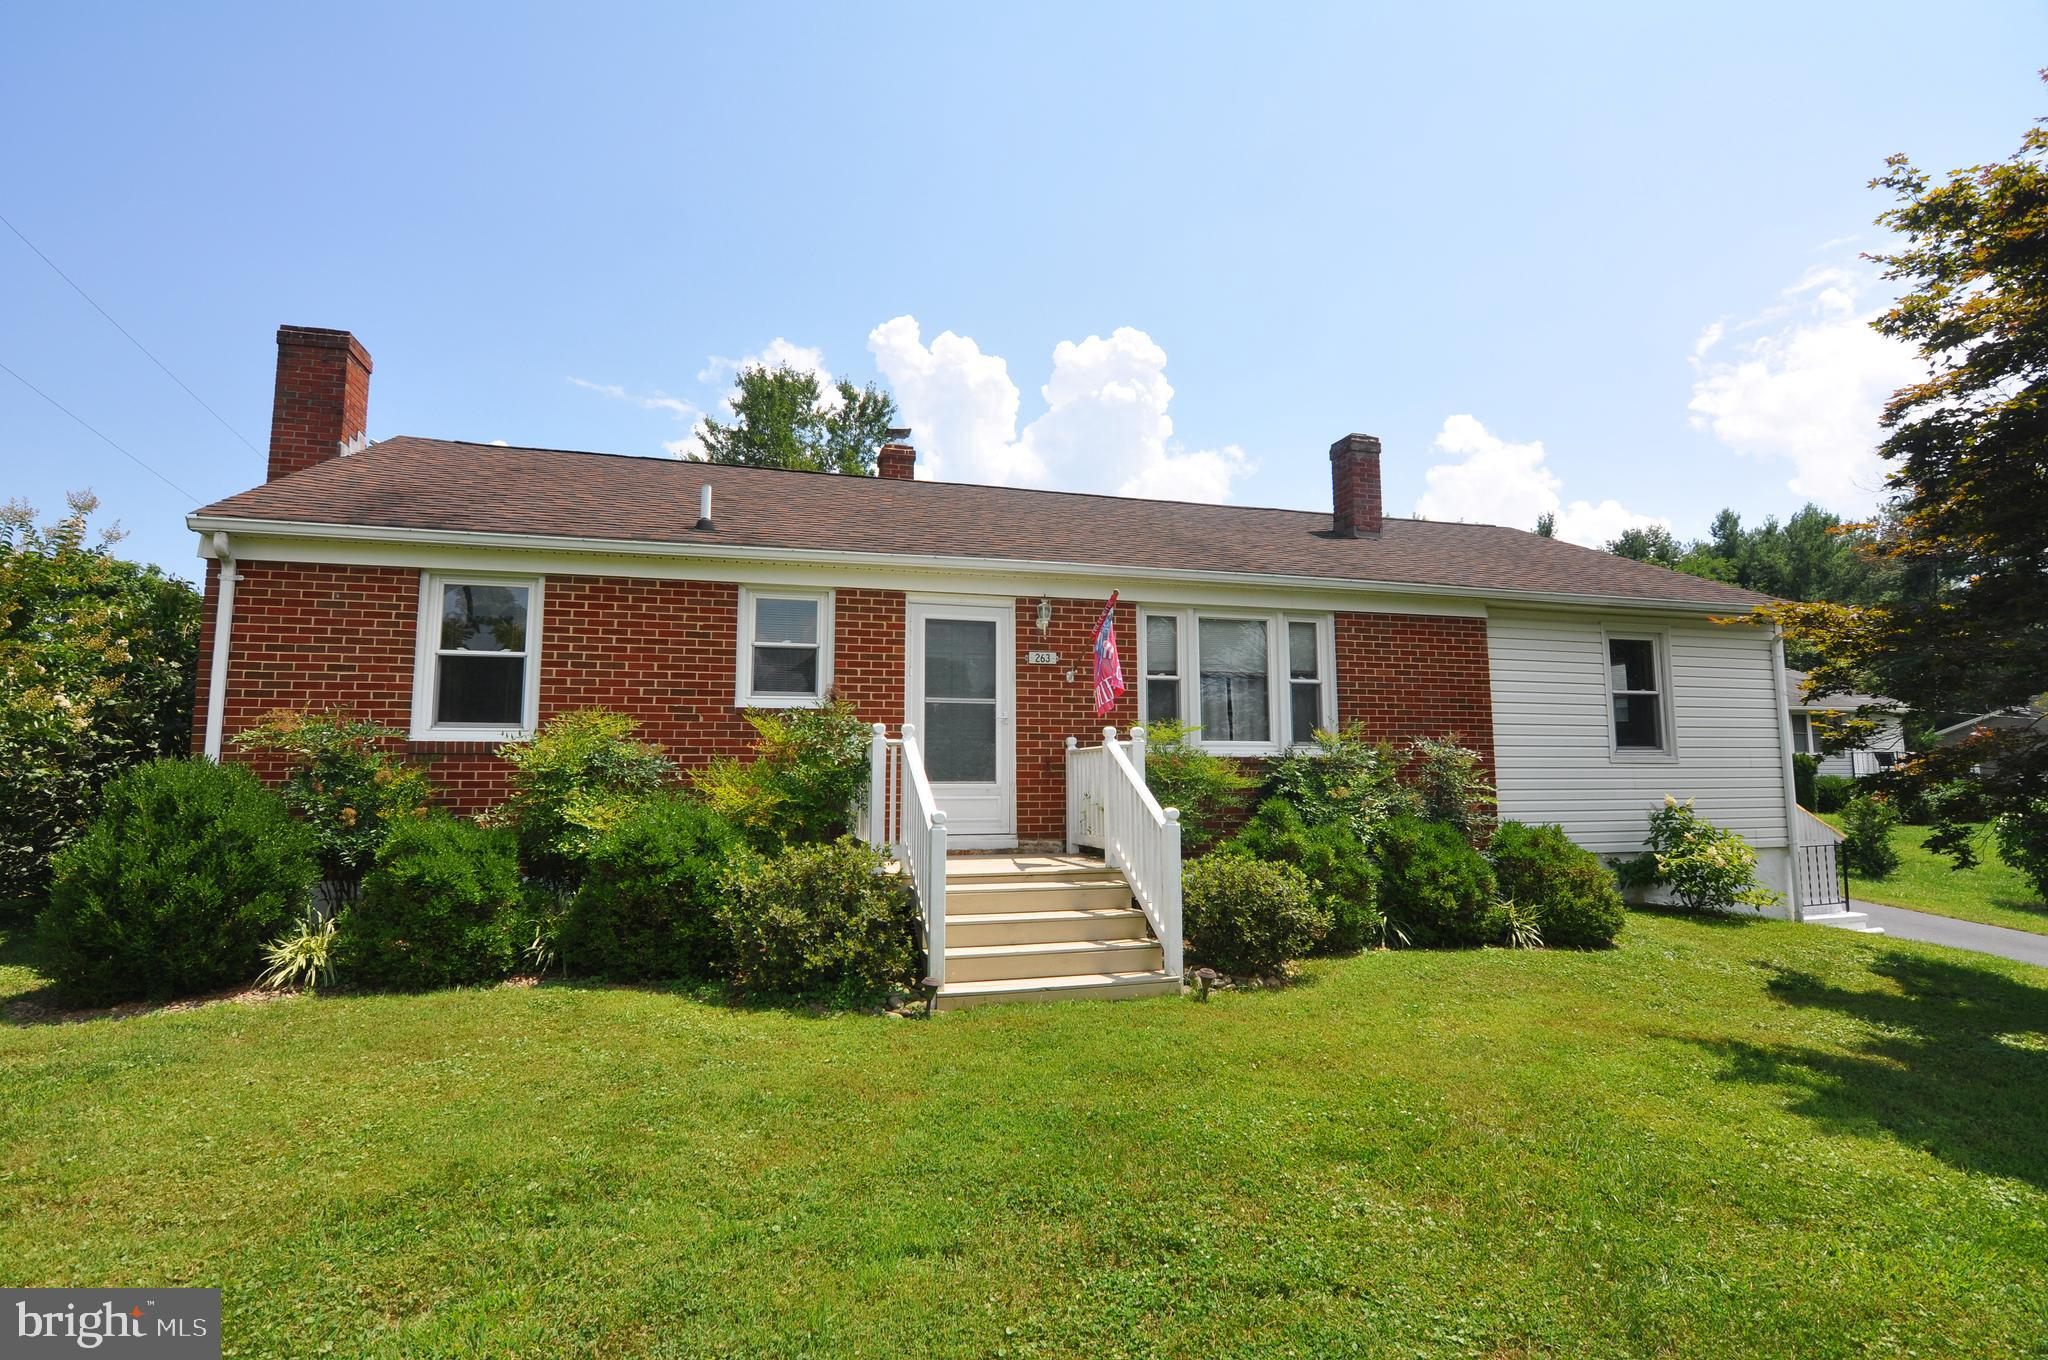 HOME SWEET HOME! A COMMUTER'S DREAM COME TRUE! Well-maintained 3-bedroom, 2-bath rancher on a beauti